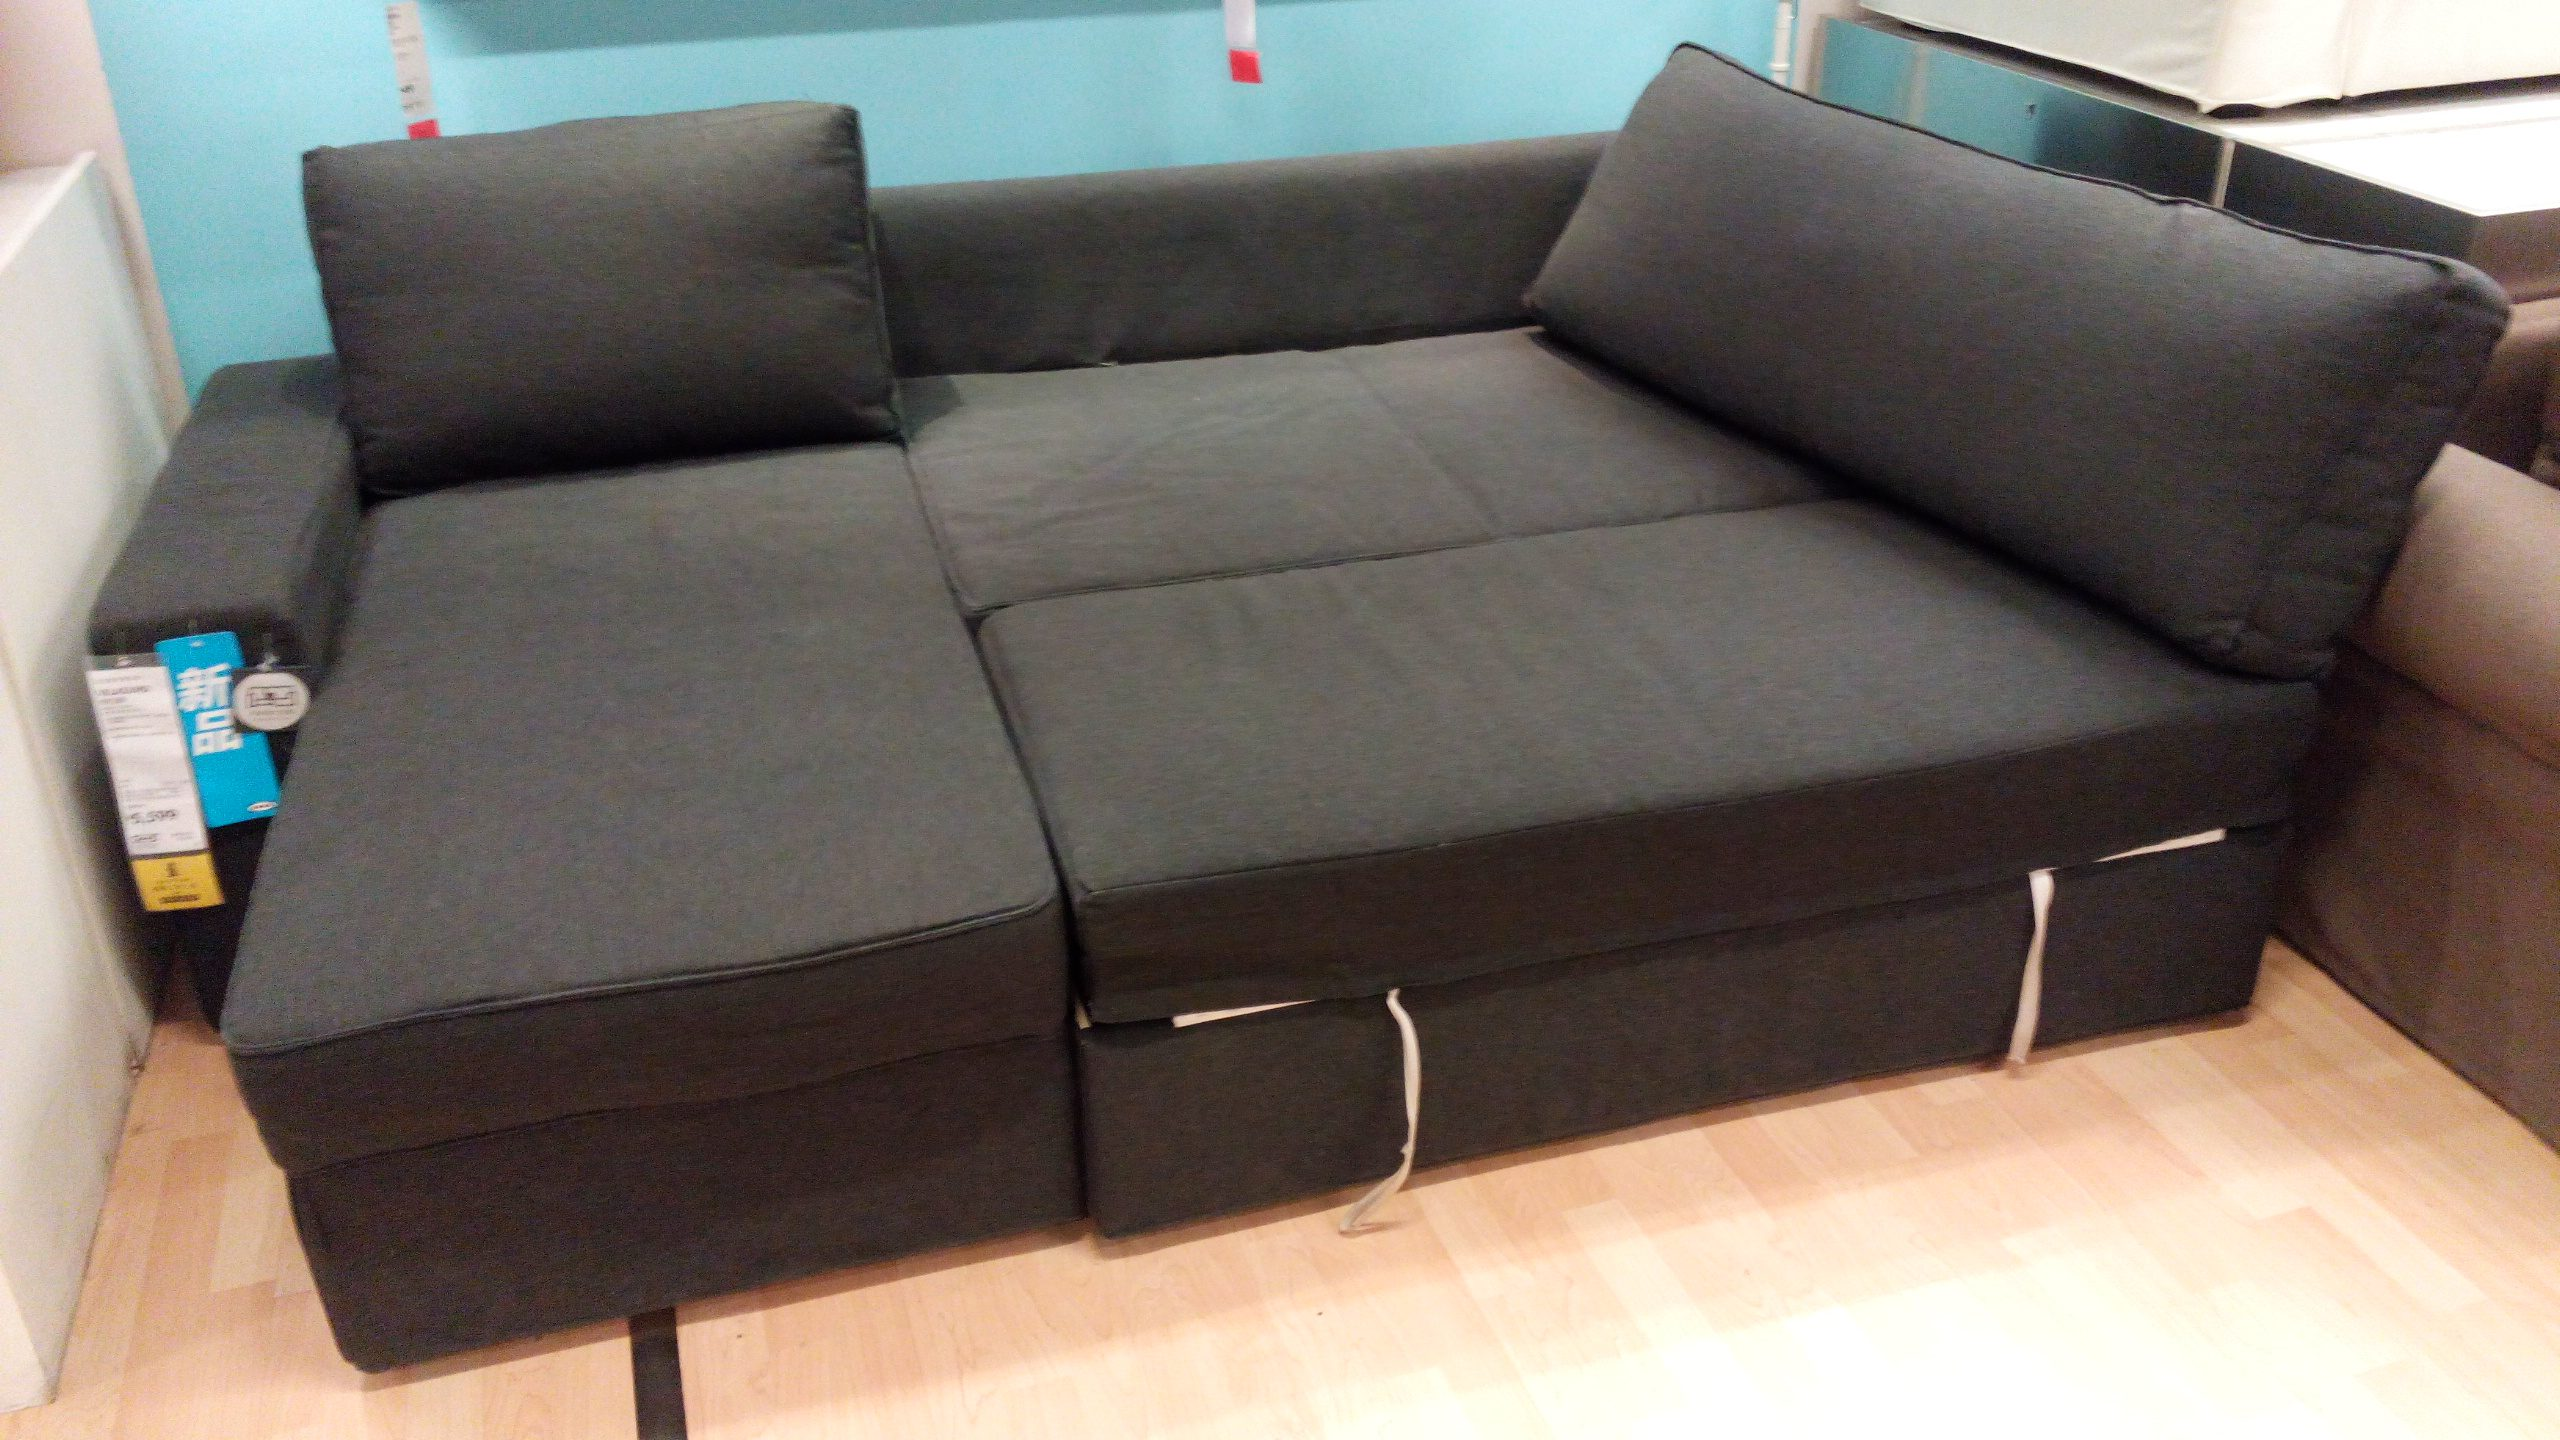 Sofa Ikea Chaise Ikea Vilasund And Backabro Review Return Of The Sofa Bed Clones